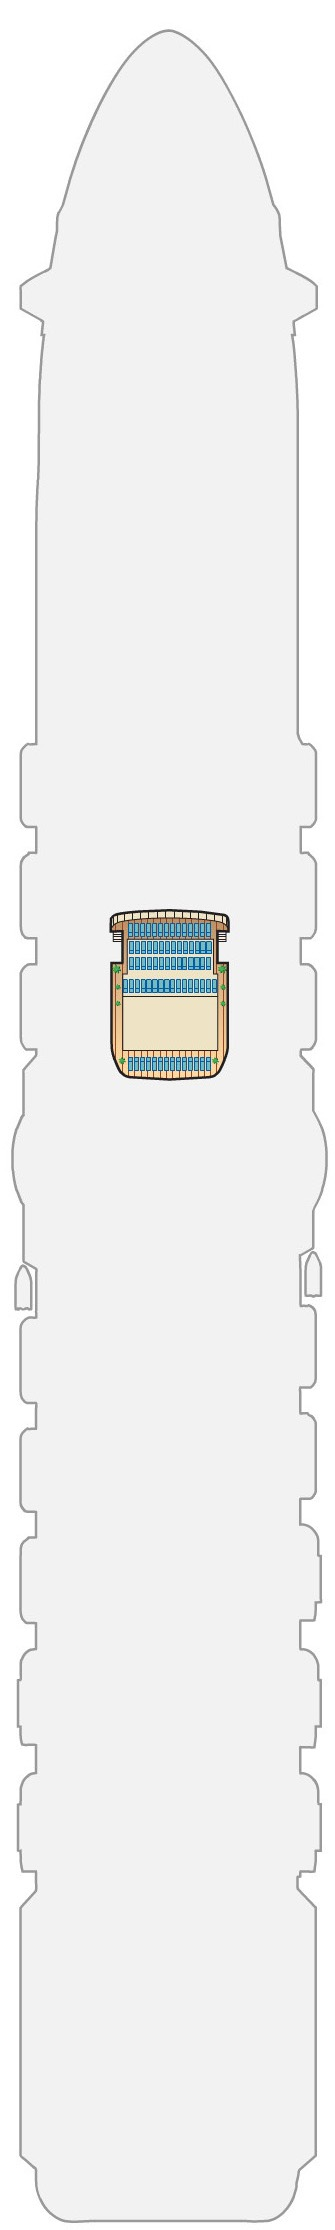 Regal Princess Deck 19 - Sky layout